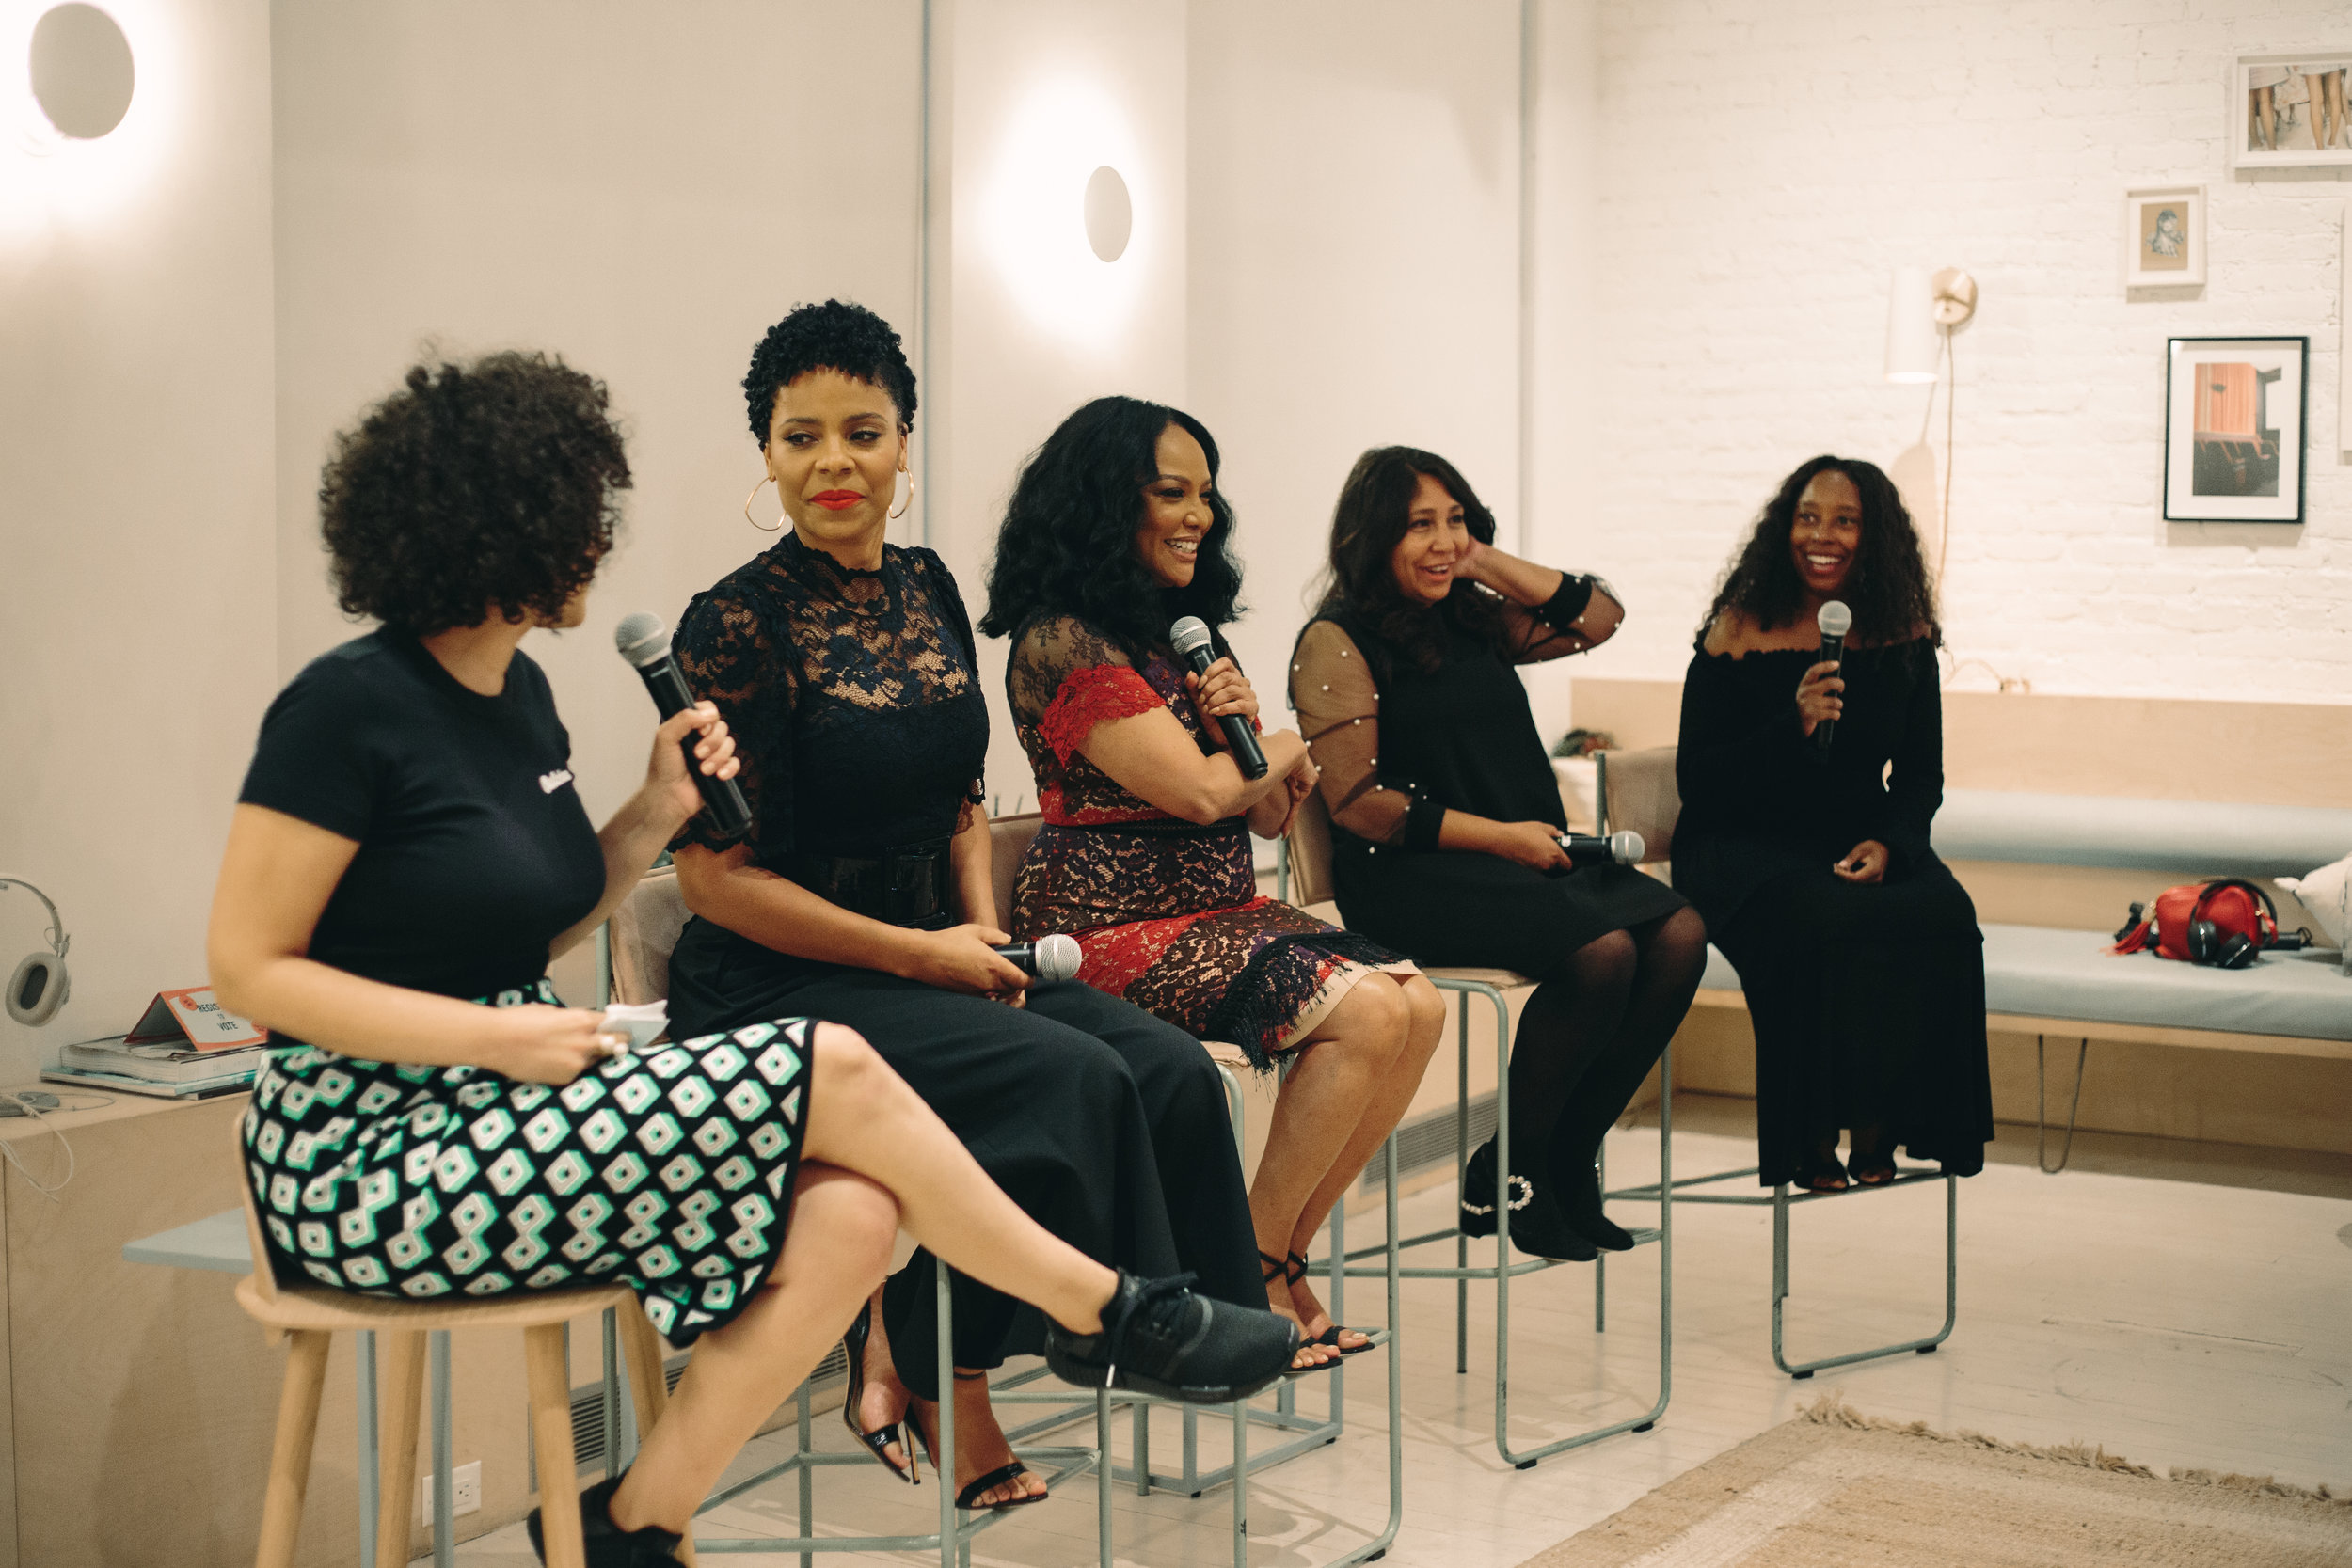 Panel discussion with cast & crew at CRWN's advanced screening in NYC, September 17th. Left to right: Lindsey Day, Sanaa Lathan, Lynn Whitfield, Haifaa al-Mansour, Tracey Bing.  Photography:  Goblin .